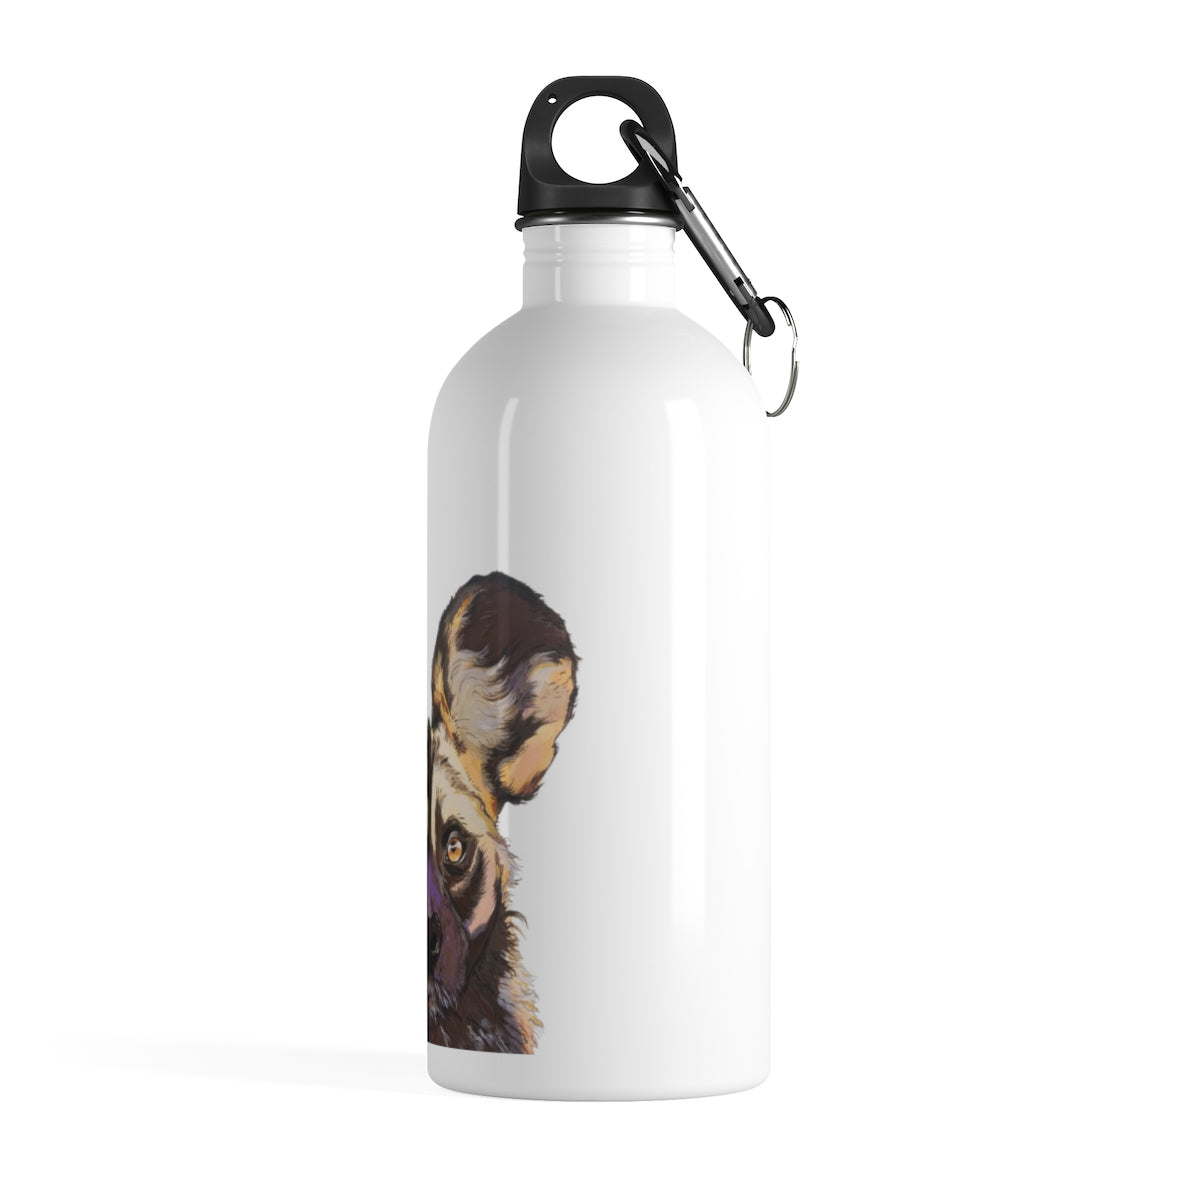 Willis the Wild Dog Stainless Steel Water Bottle